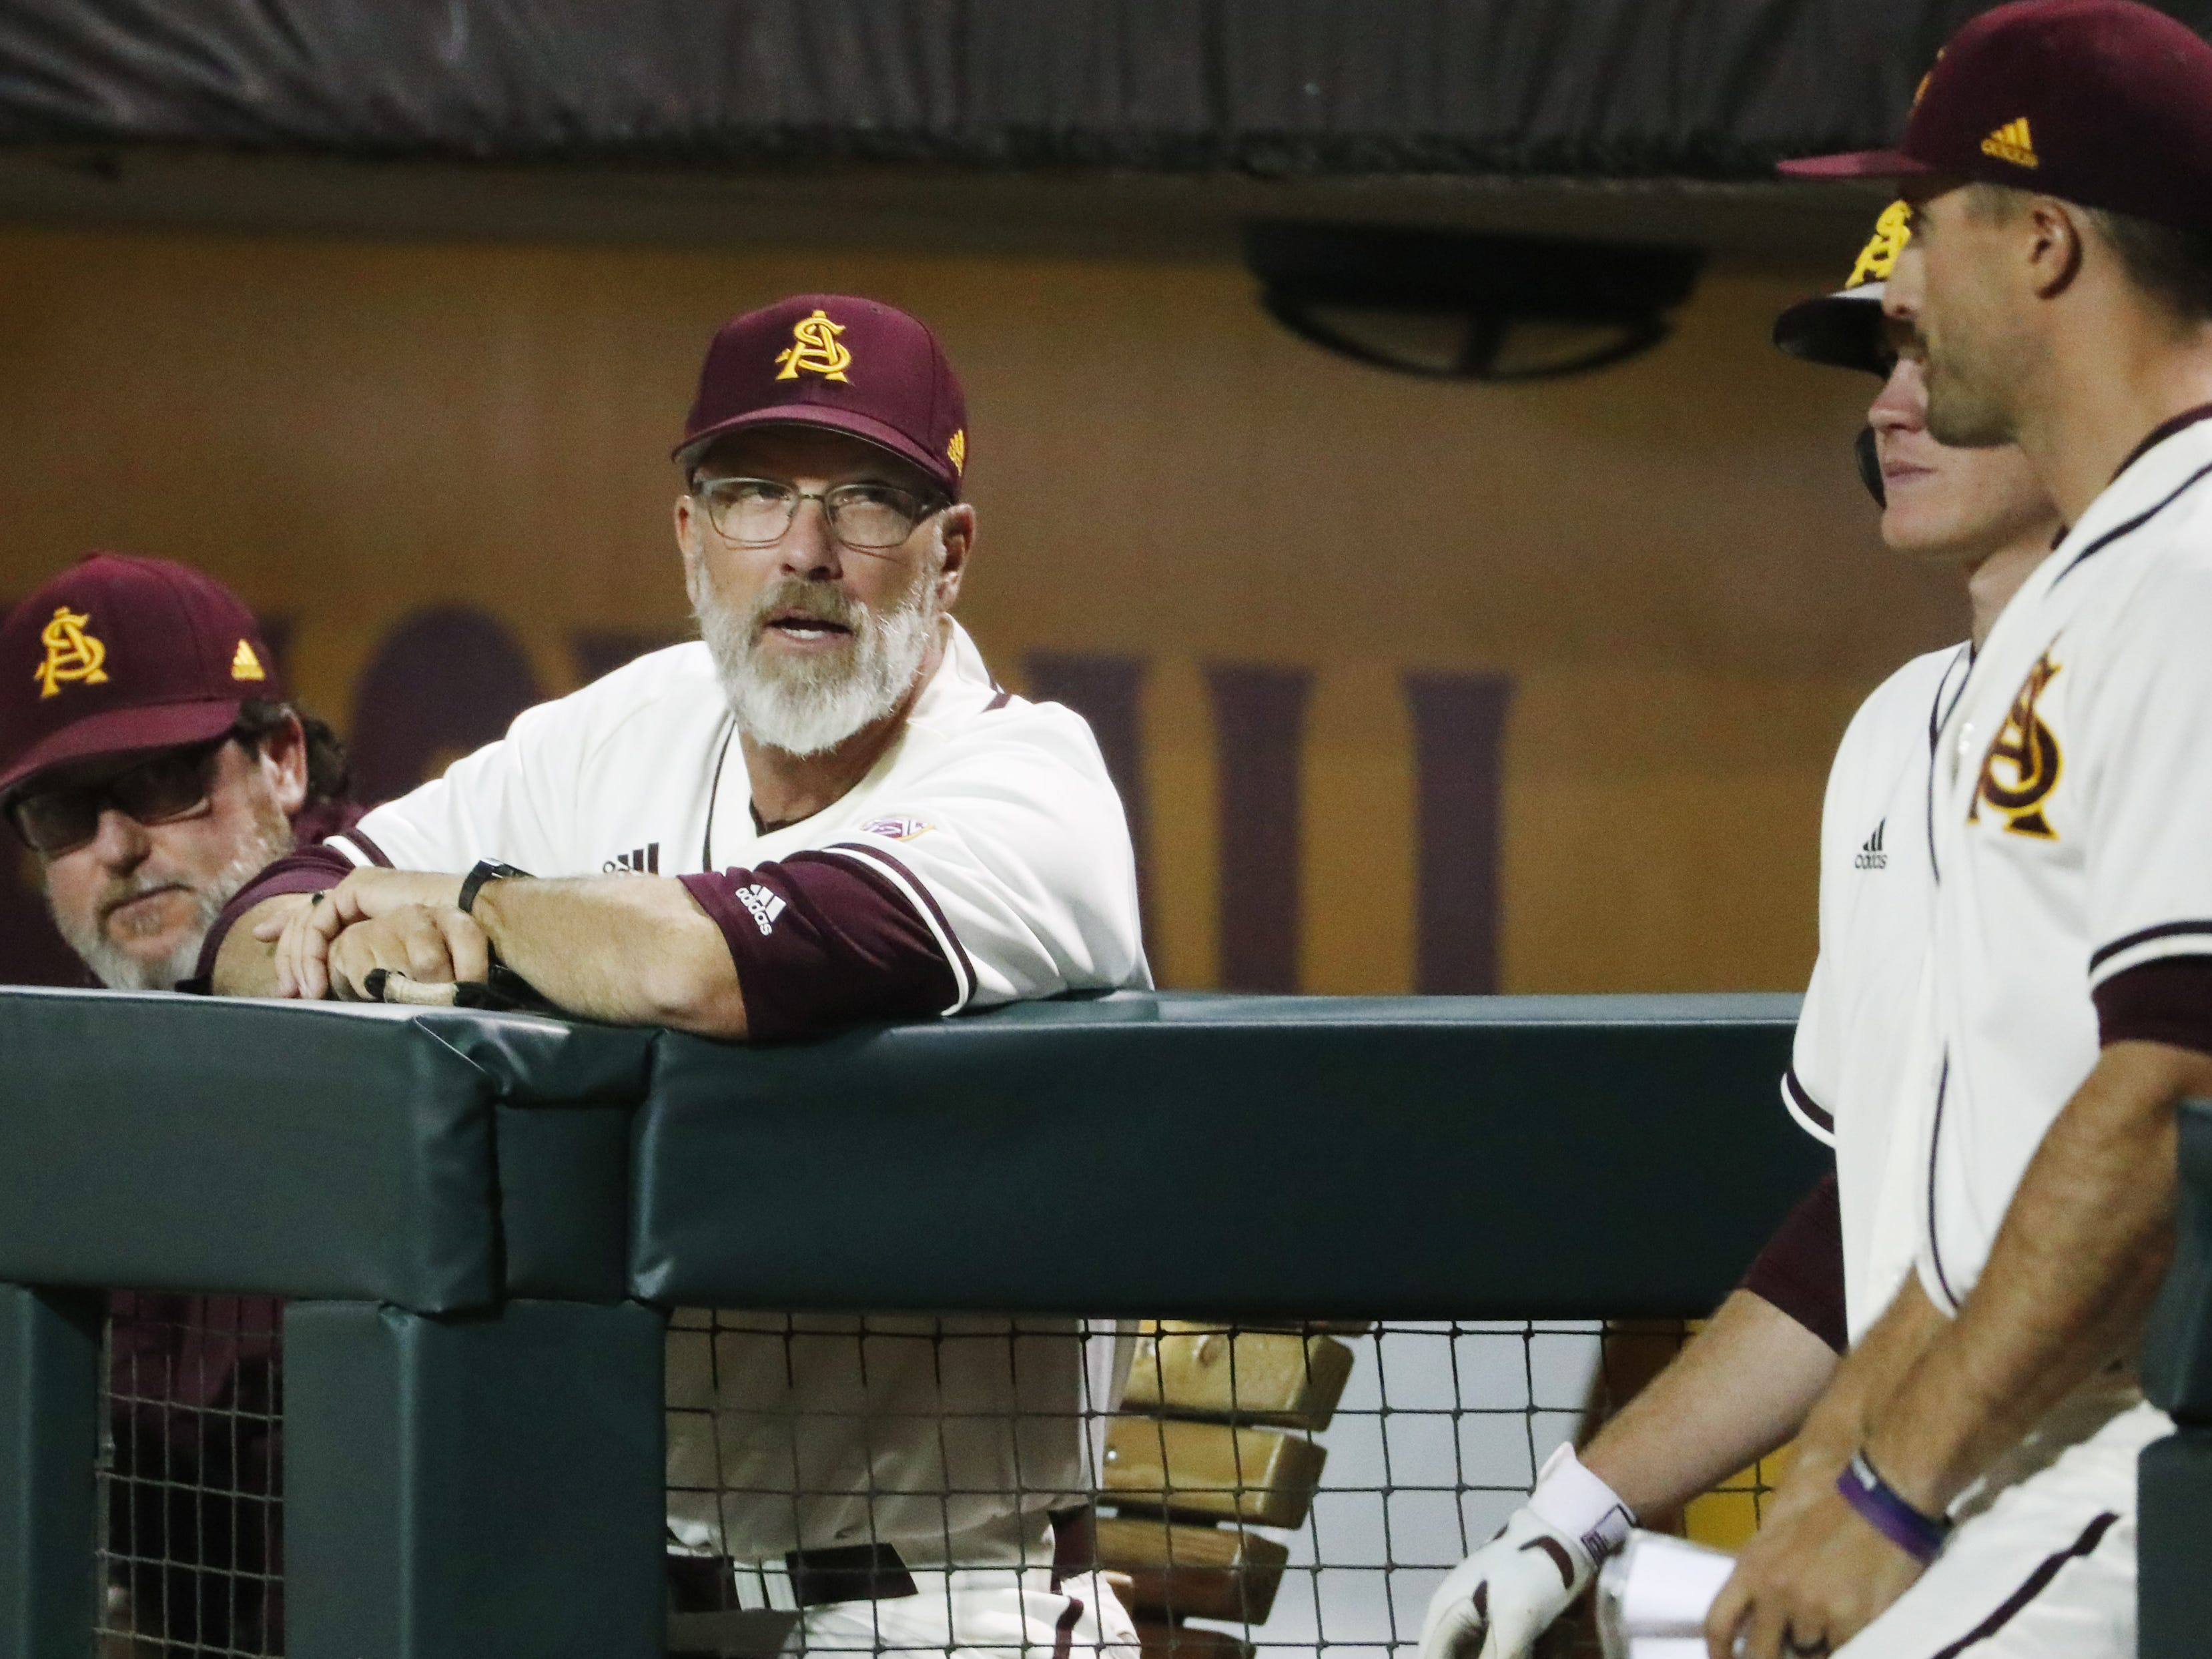 ASU baseball coach Tracy Smith talks to his players during the sixth inning against UNLV in Phoenix April 23, 2019.